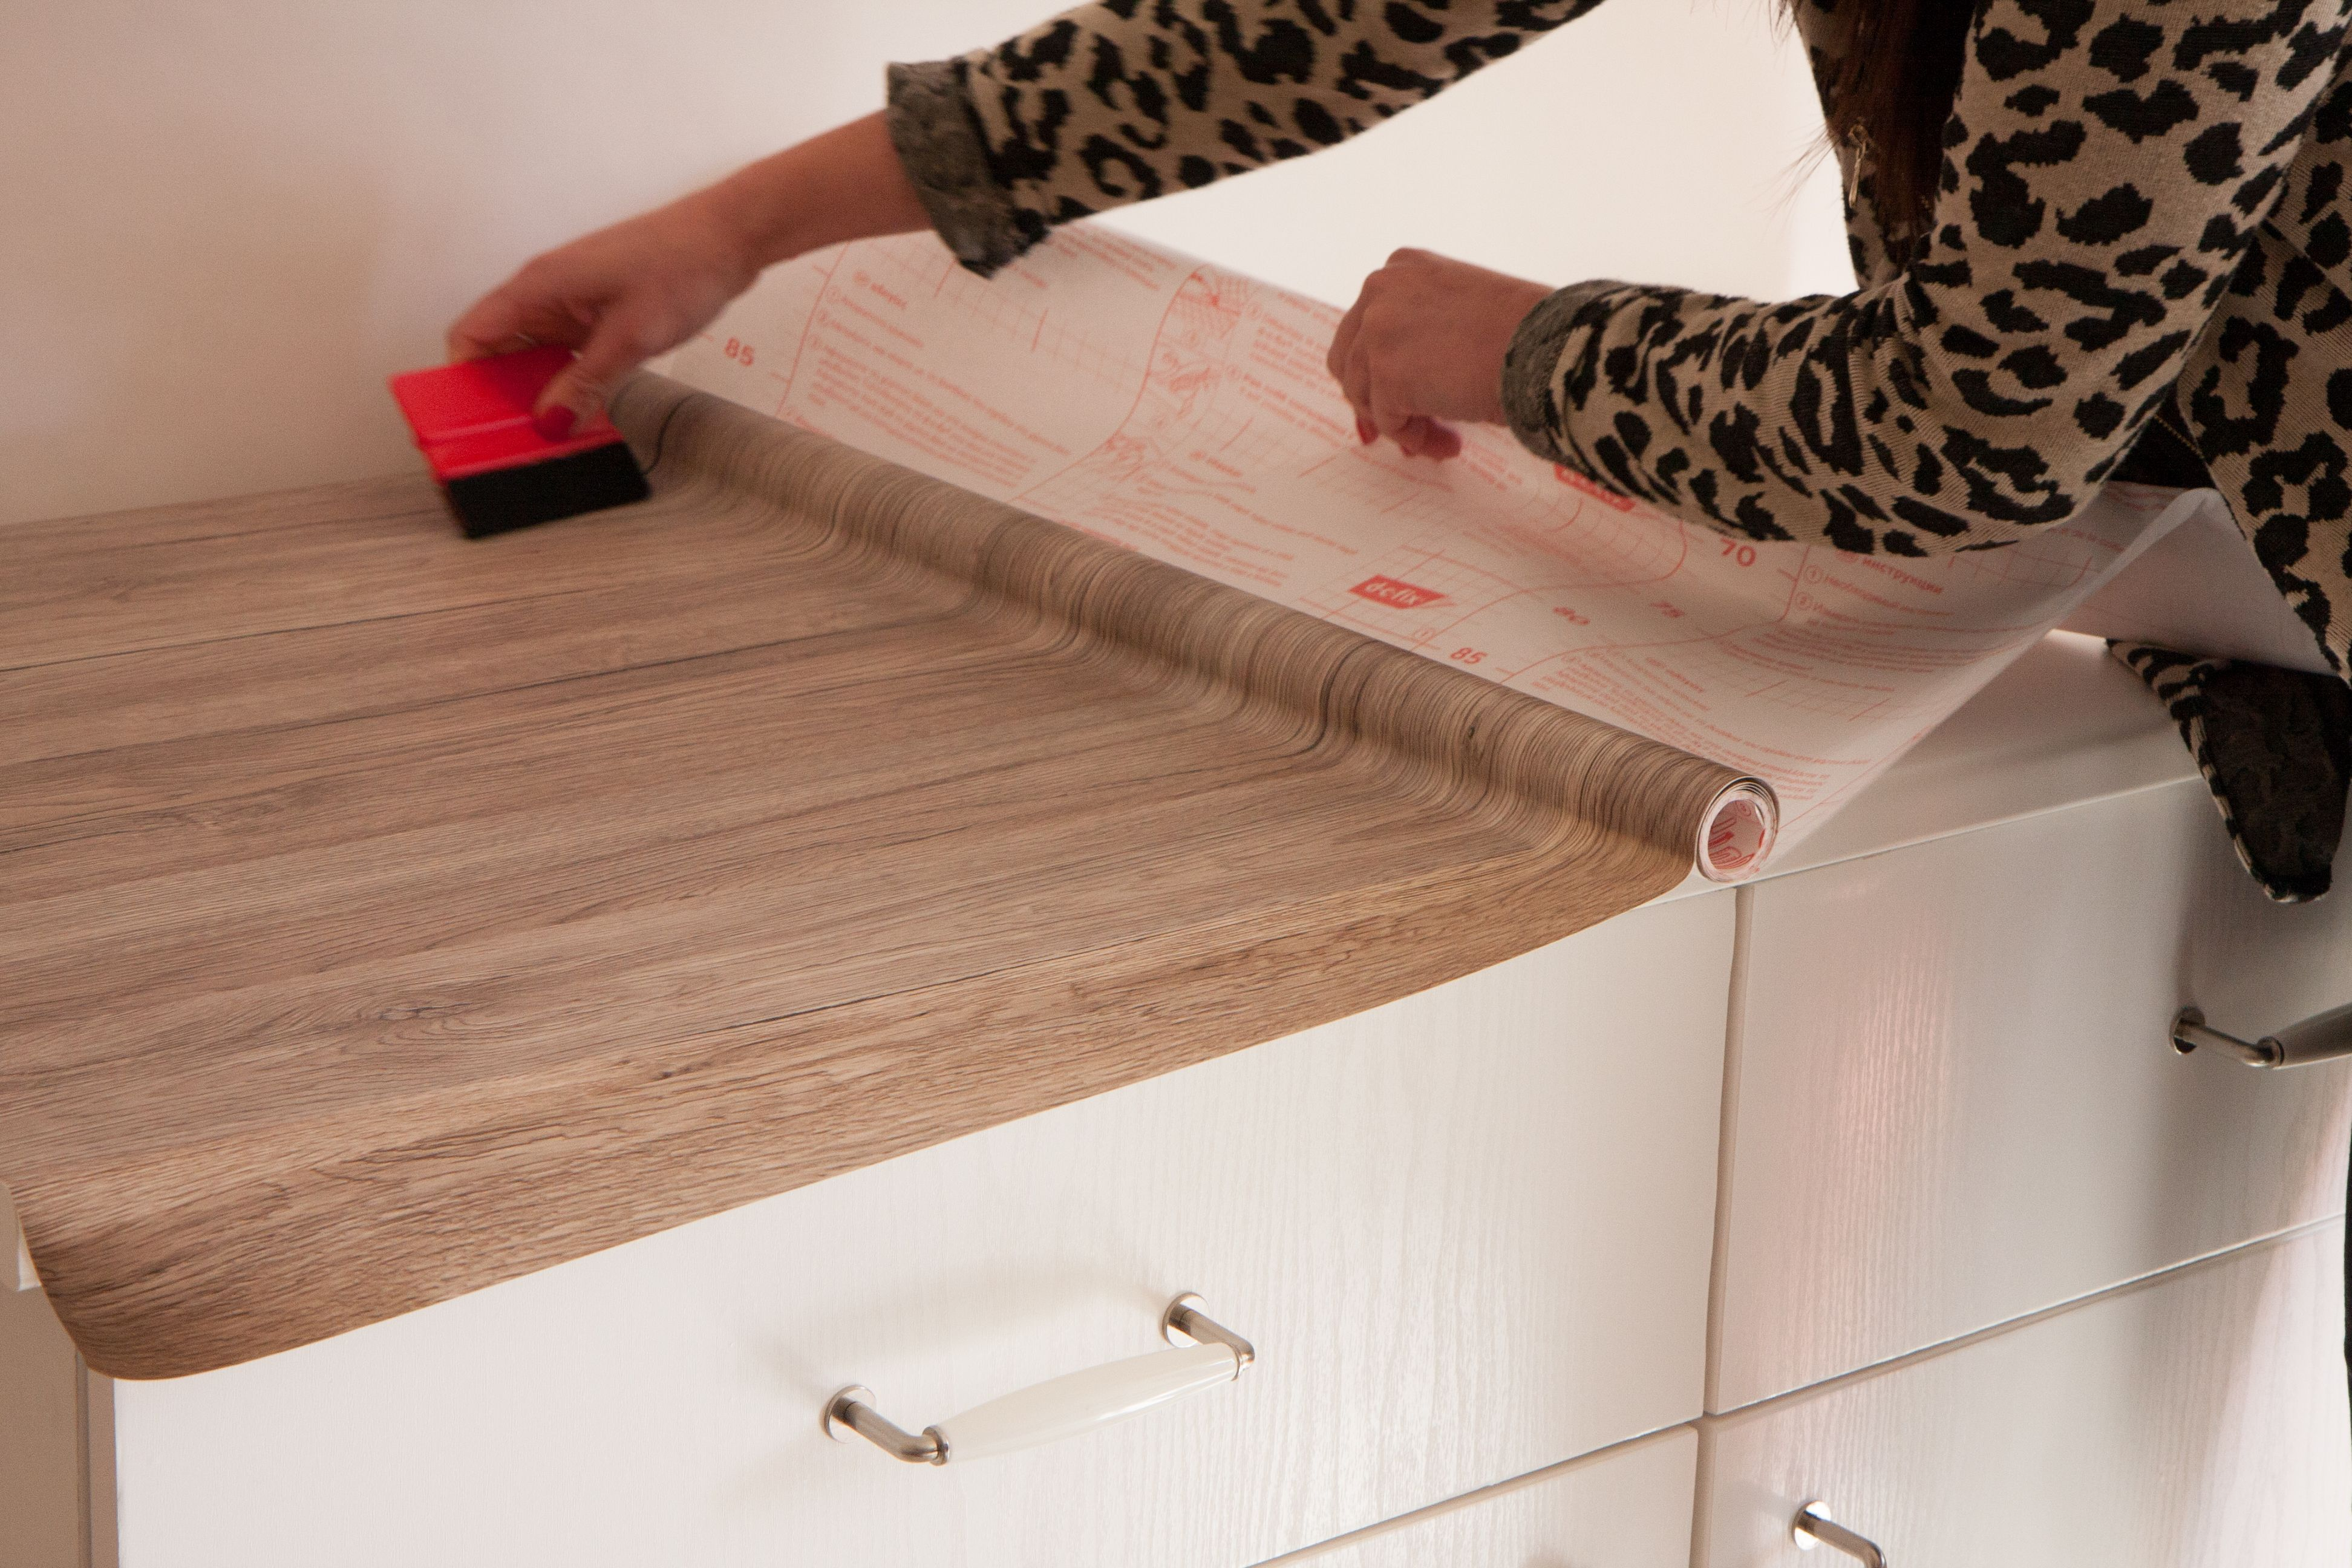 Wood Kitchen Table Top Is Stickywood Kitchen Table Top Is Sticky Ever Find Yourself Within The K Kitchen Worktop Makeover Kitchen Worktop Countertop Makeover